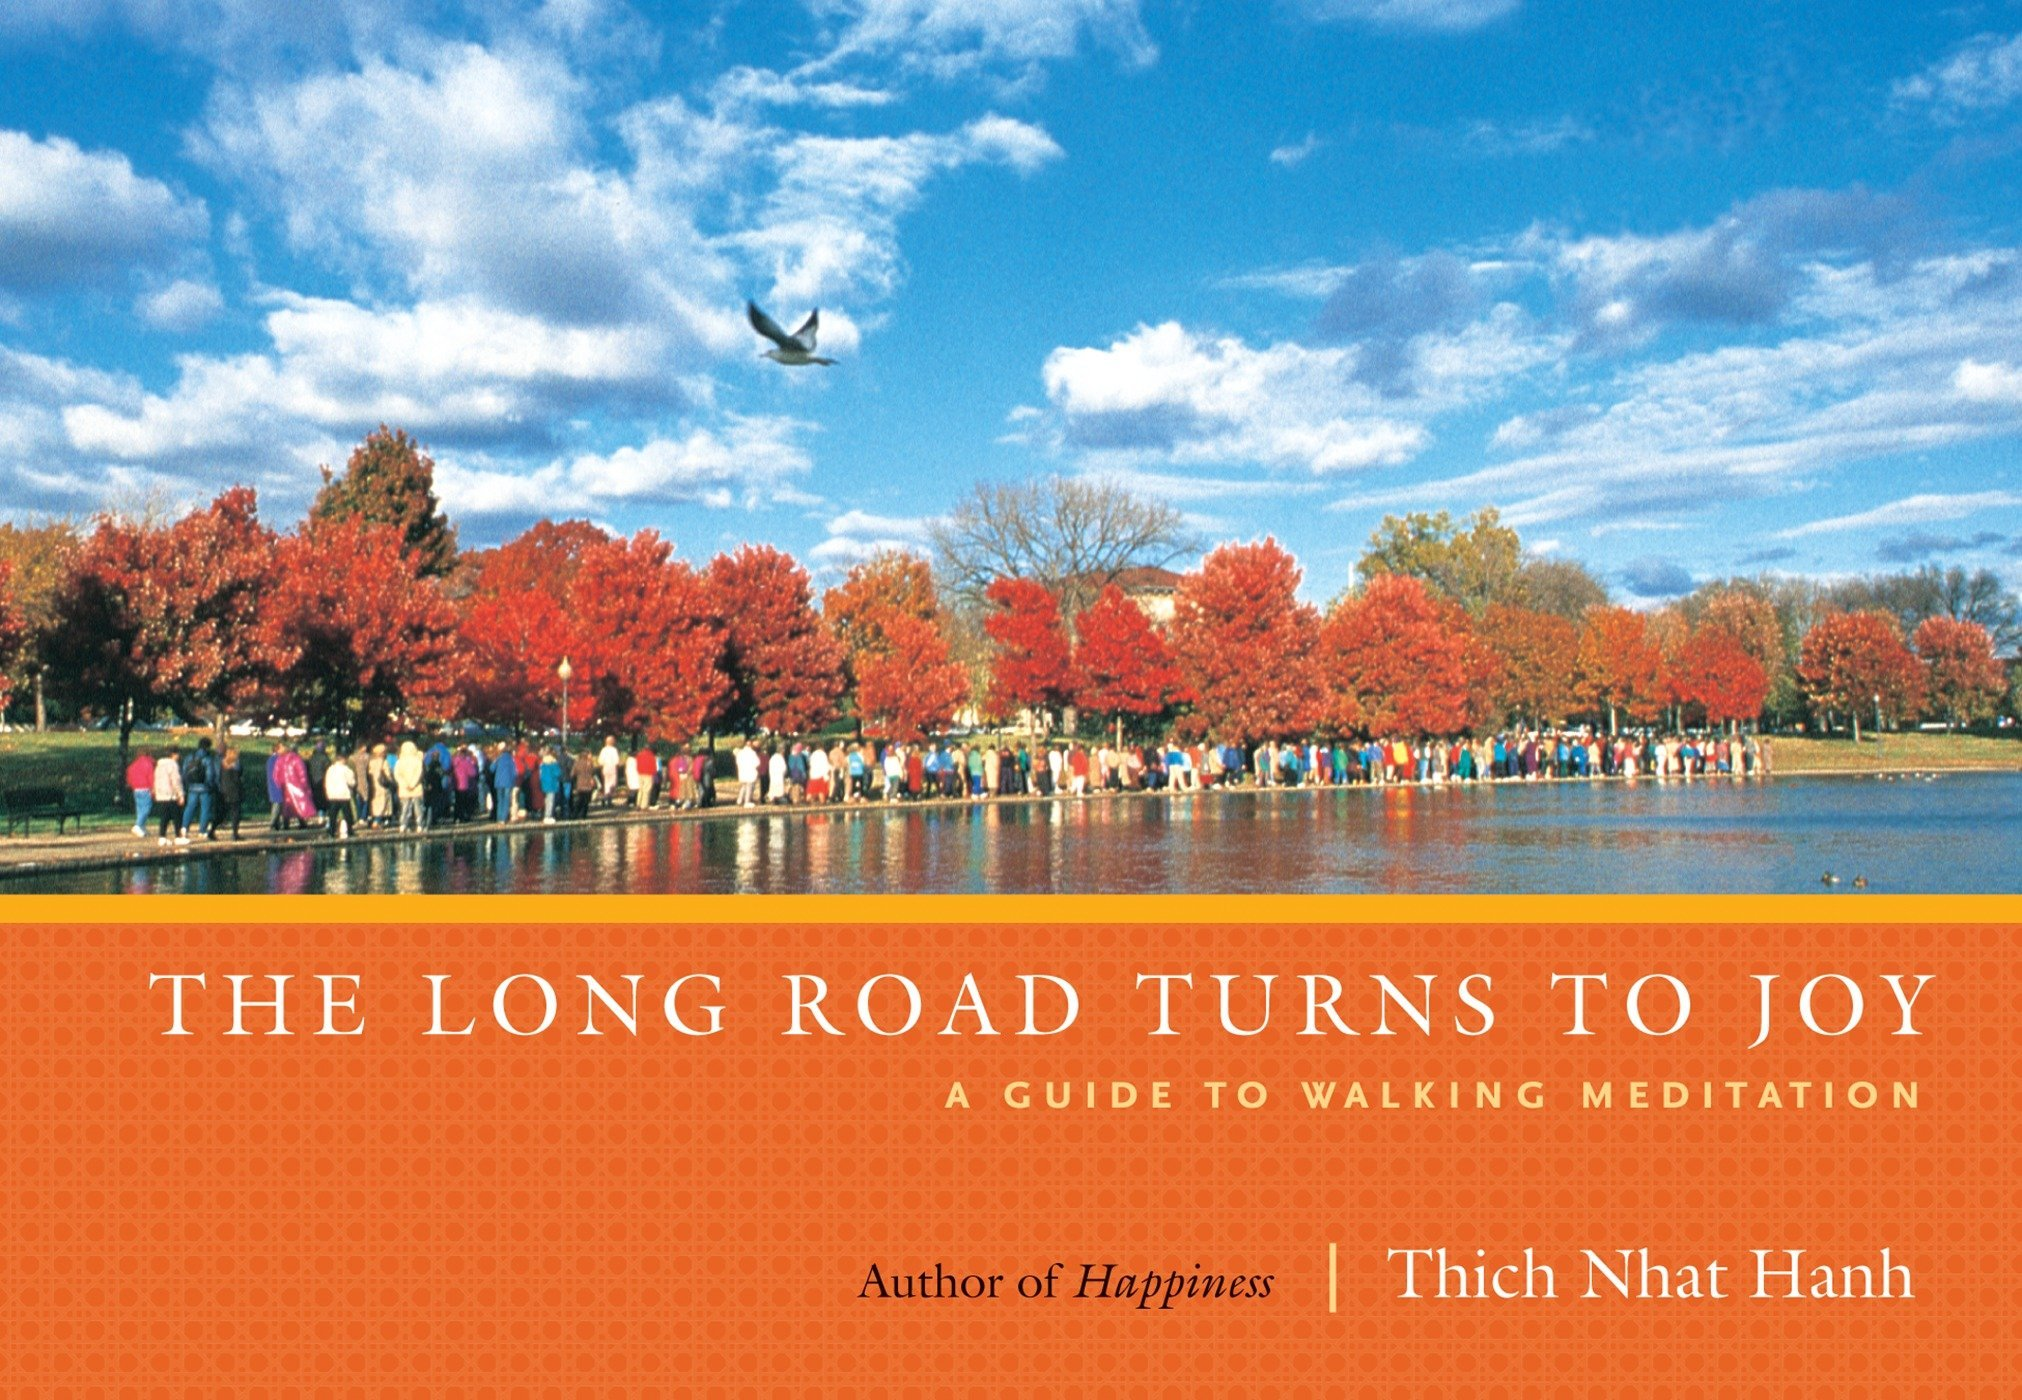 "the long road turns to joy: a guide to walking meditation - By Thich Nhat HanhOne of the few books focused completely on mindful walking and walking meditation. This revised edition of the best-selling title (nearly 80,000 copies sold to date) includes over 30 percent new material—including new walking meditation poems and practices—and provides a practical and inspirational introduction to this important practice. Written in Thich Nhat Hanh's clear and accessible style, Long Road Turns To Joy reminds us that we ""walk not in order to arrive, but walk just for walking."" Touching the earth with our feet is an opportunity to live in the here and now. Thich Nhat Hanh reminds us to enjoy each step and each breath in order to regain peace in difficult moments. The simple practice of walking with attention and mindfulness can bring the spirit of prayer into our everyday life. This book will appeal to anyone who would like to get more out of walking, from long-time meditators to those who are just looking for a way to make their walk around the block more meaningful."